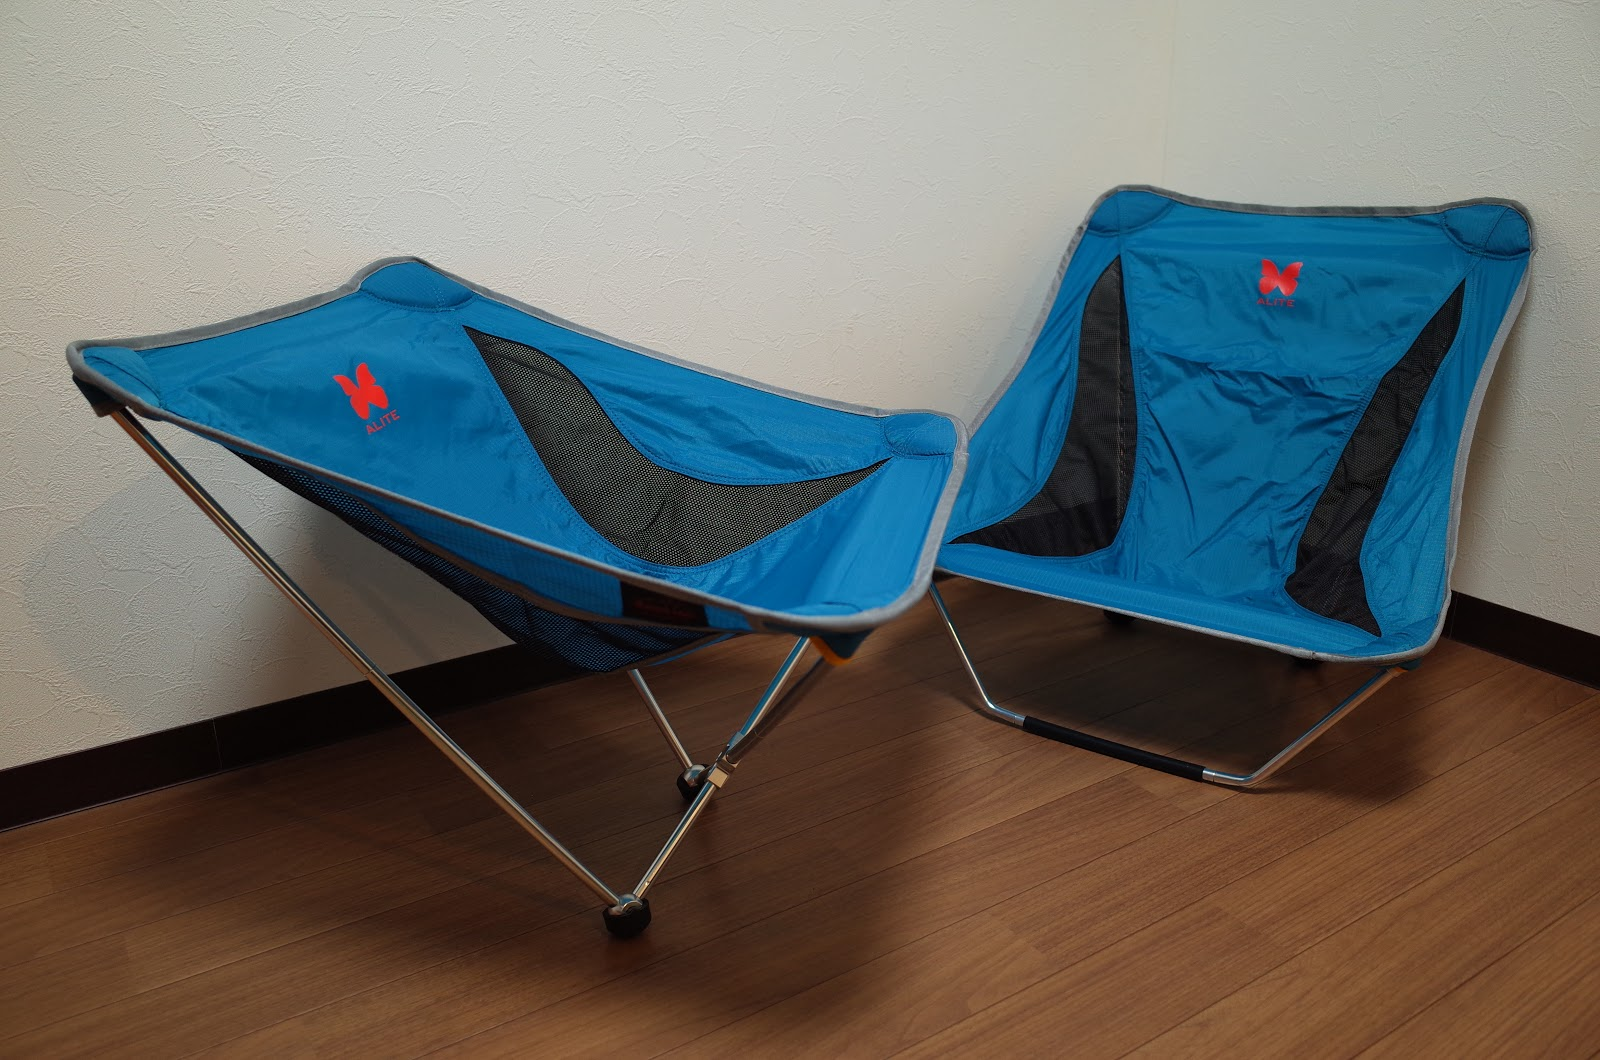 Alite Monarch Chair Warranty Black Swivel Office With Arms モノalite Mayfly 2 Chairを導入したゆるキャン 6巻 ほ